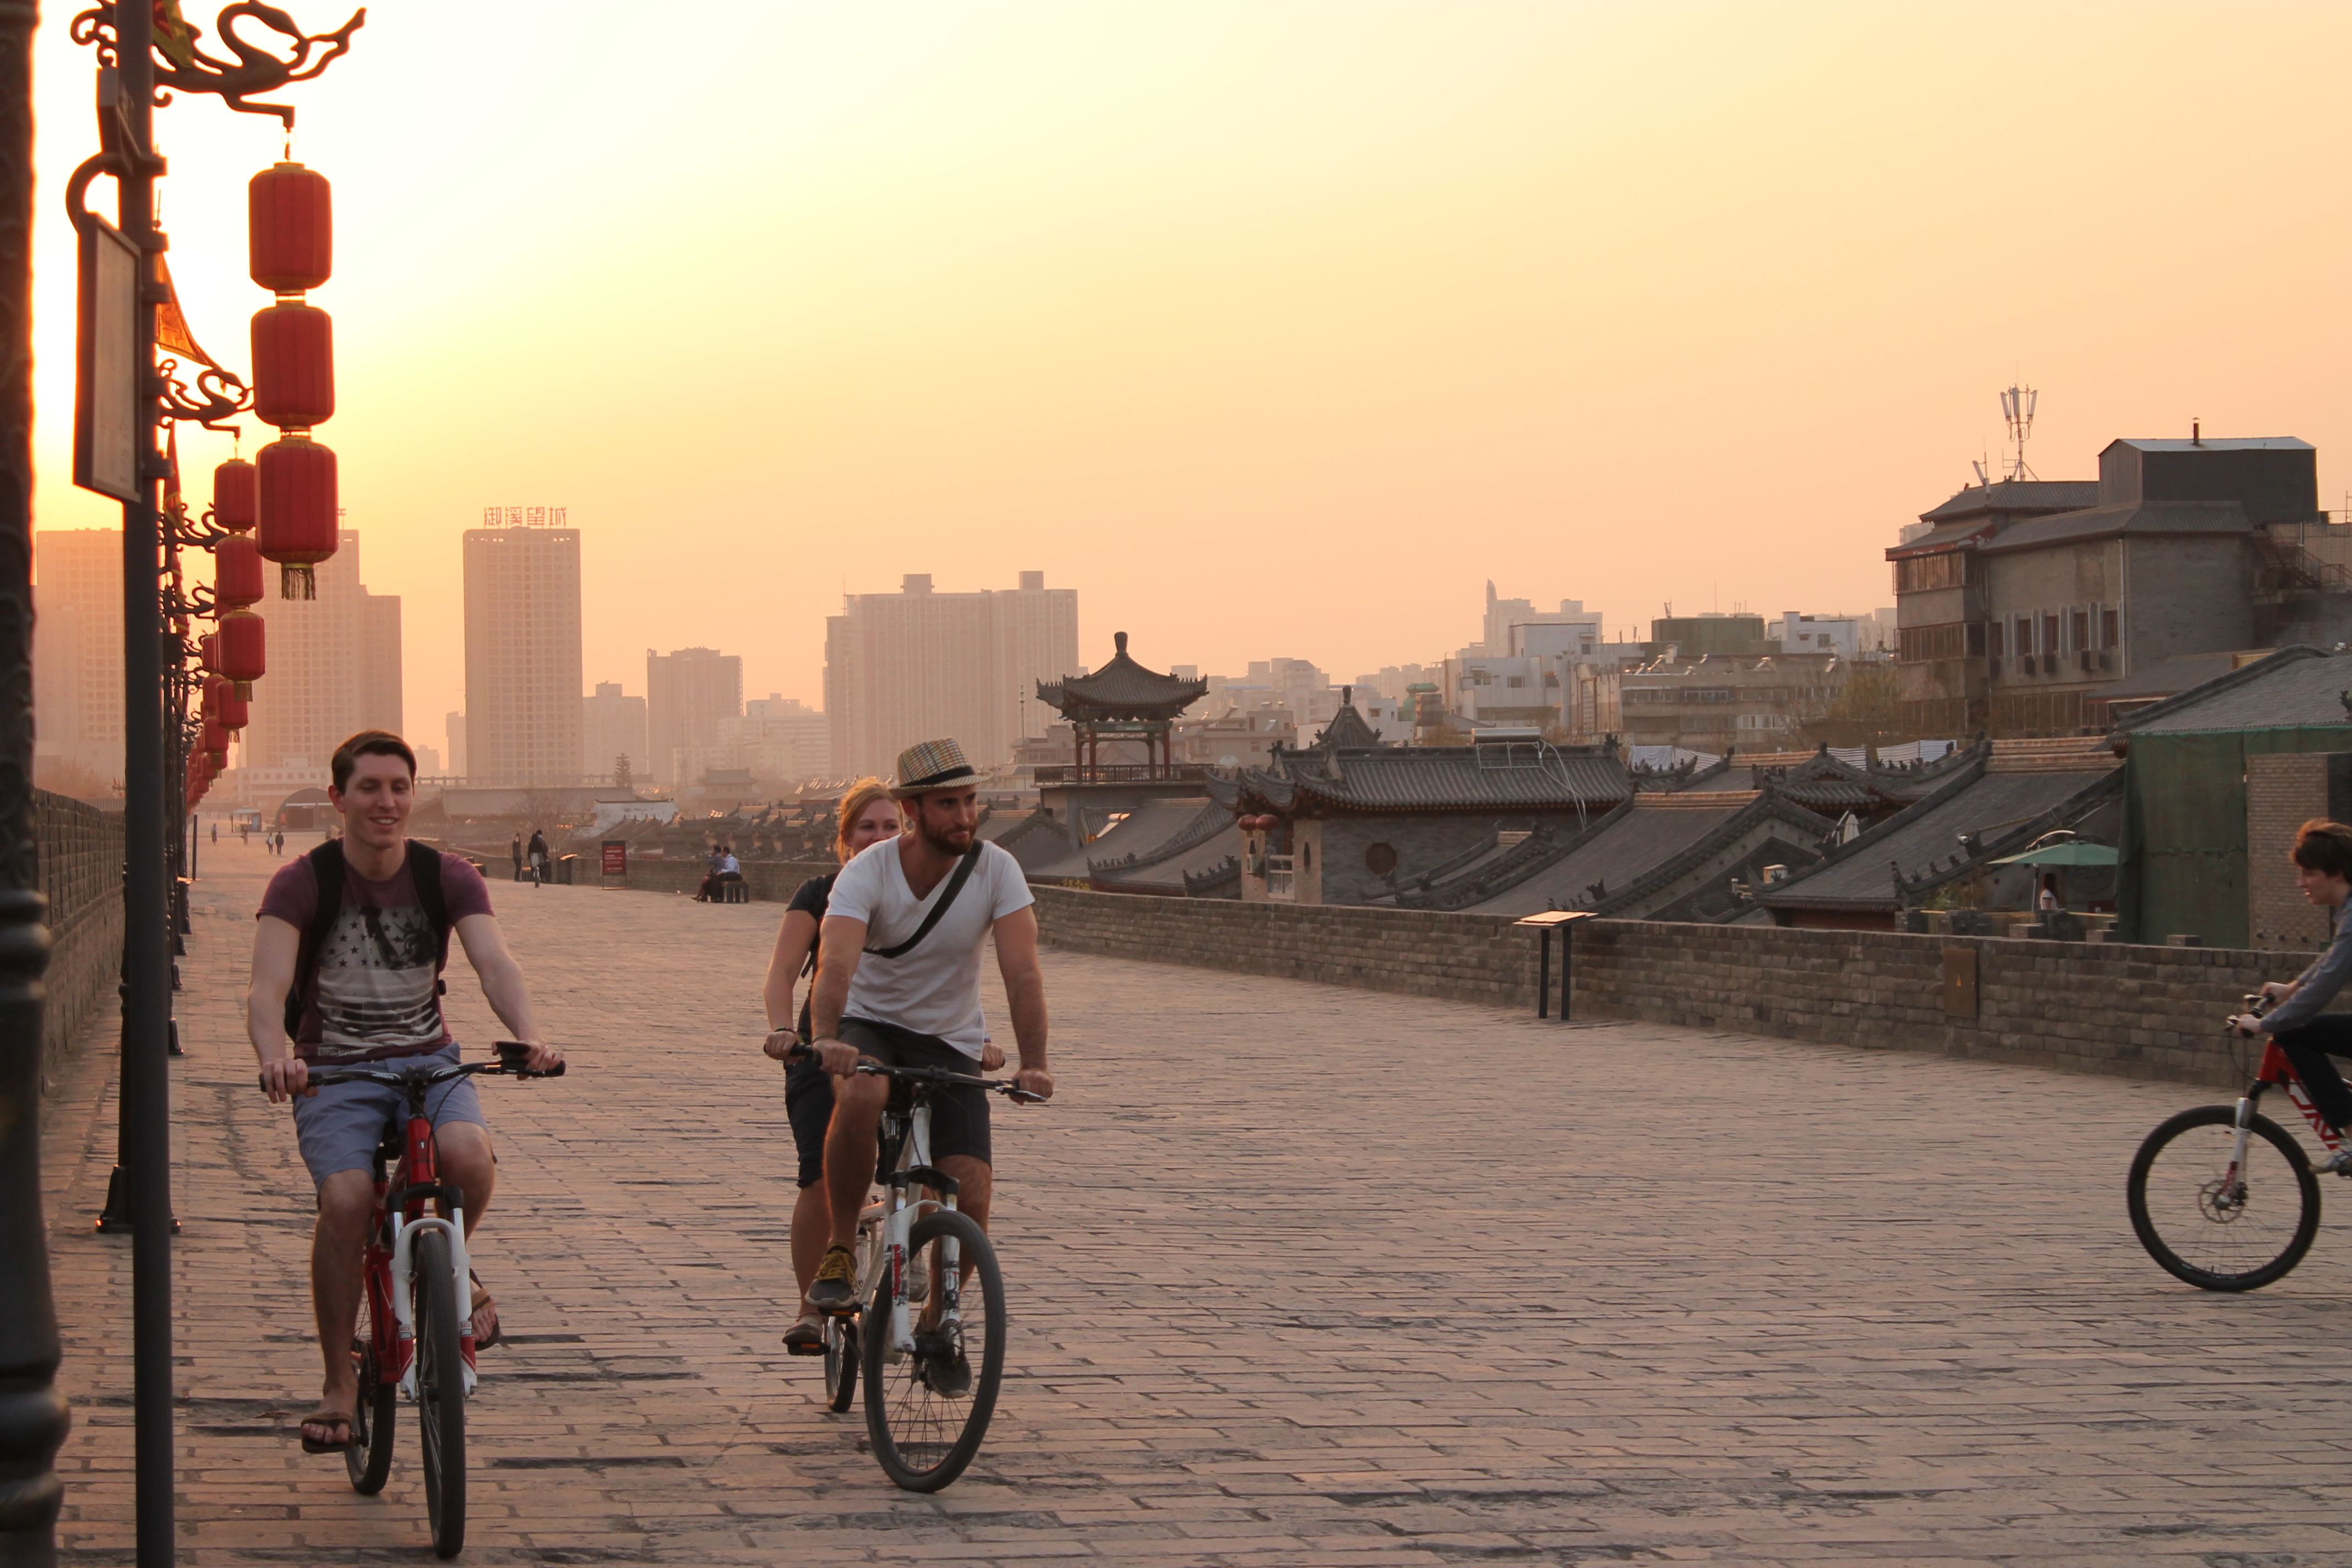 interns riding bikes on the ancient wall of Xi'an